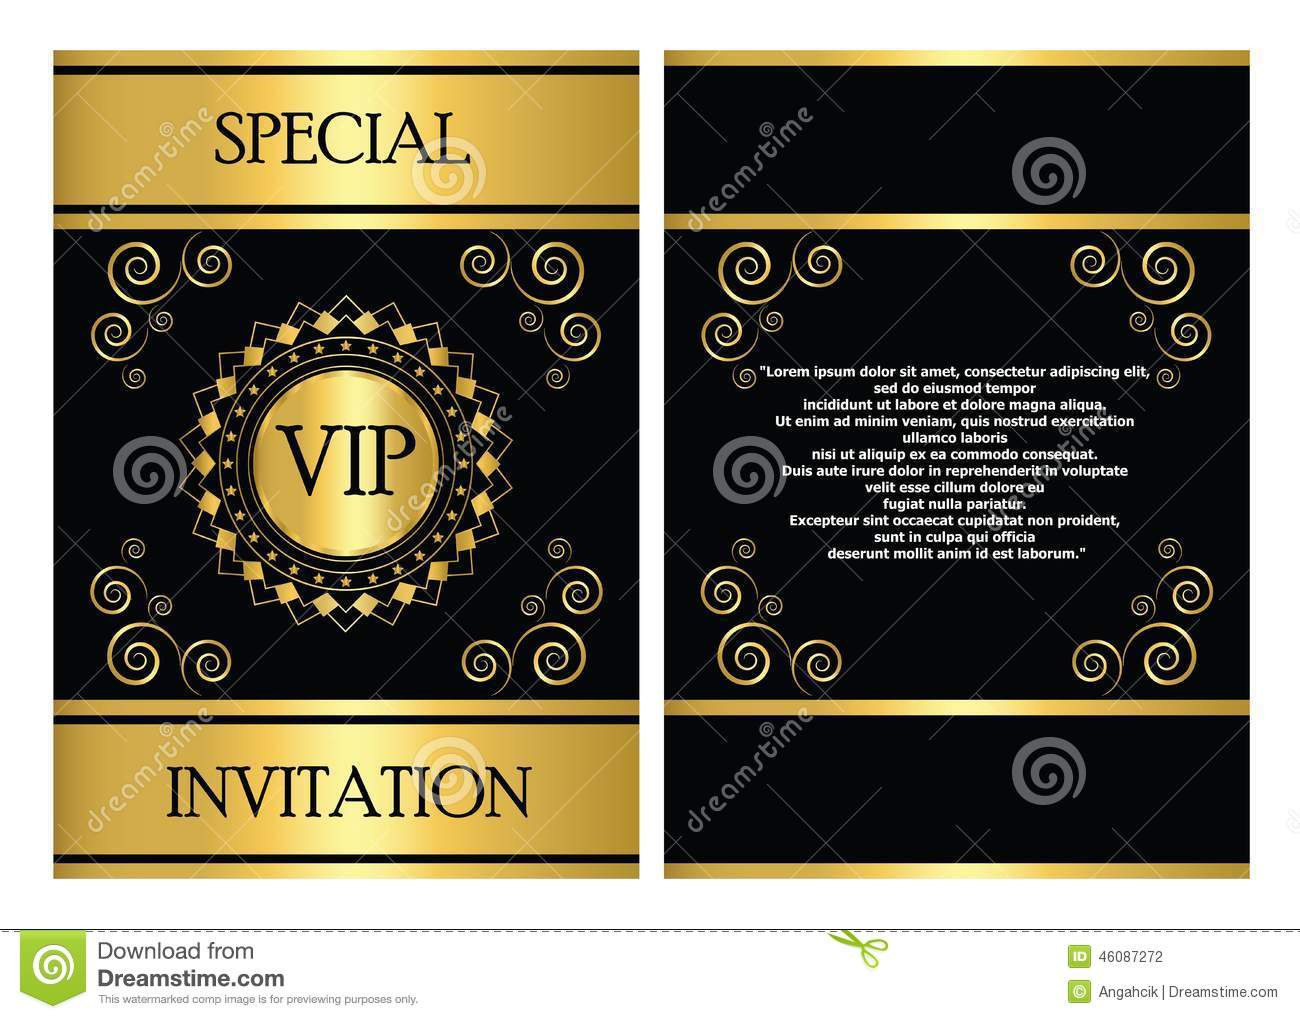 Vip invitation card template stock vector illustration of company vip invitation card template wajeb Images